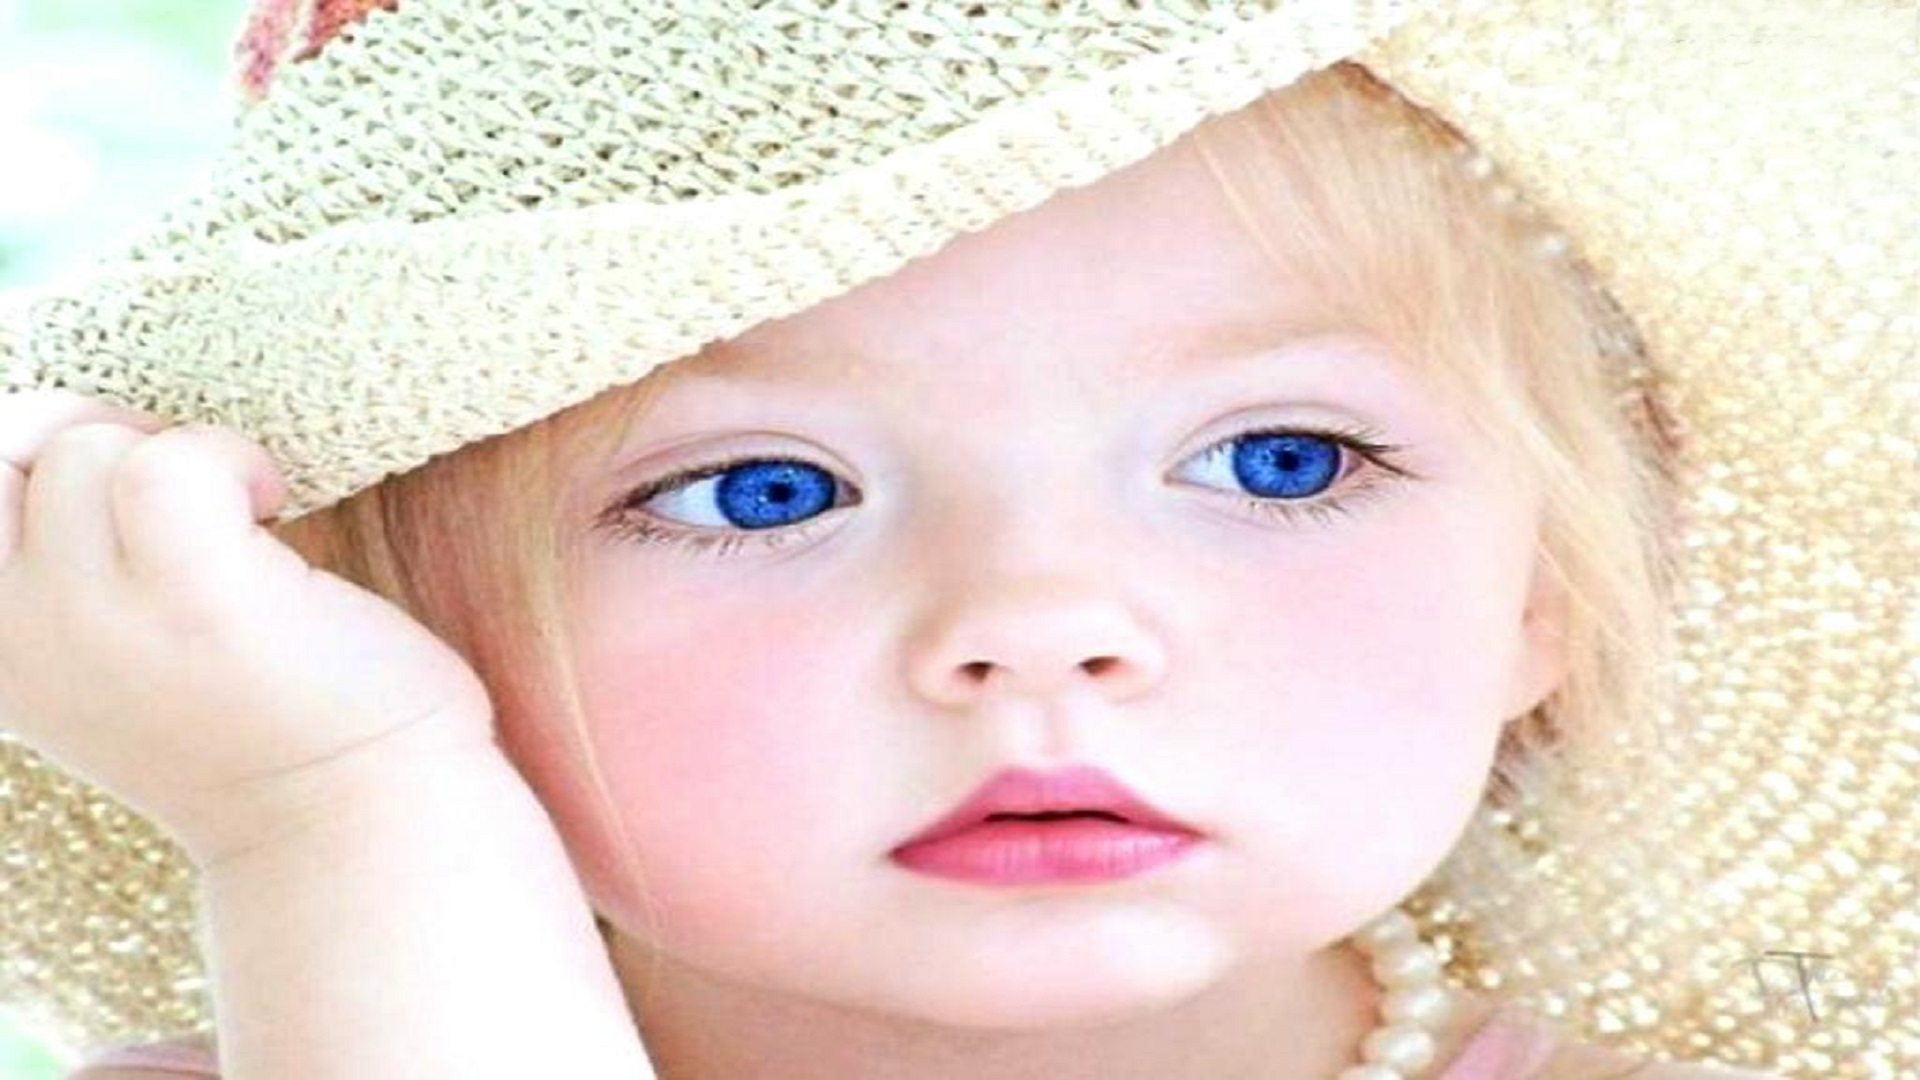 Beautiful sweet baby blue eyes hd free wallpaper hd wallpaper beautiful sweet baby blue eyes hd free wallpaper altavistaventures Choice Image